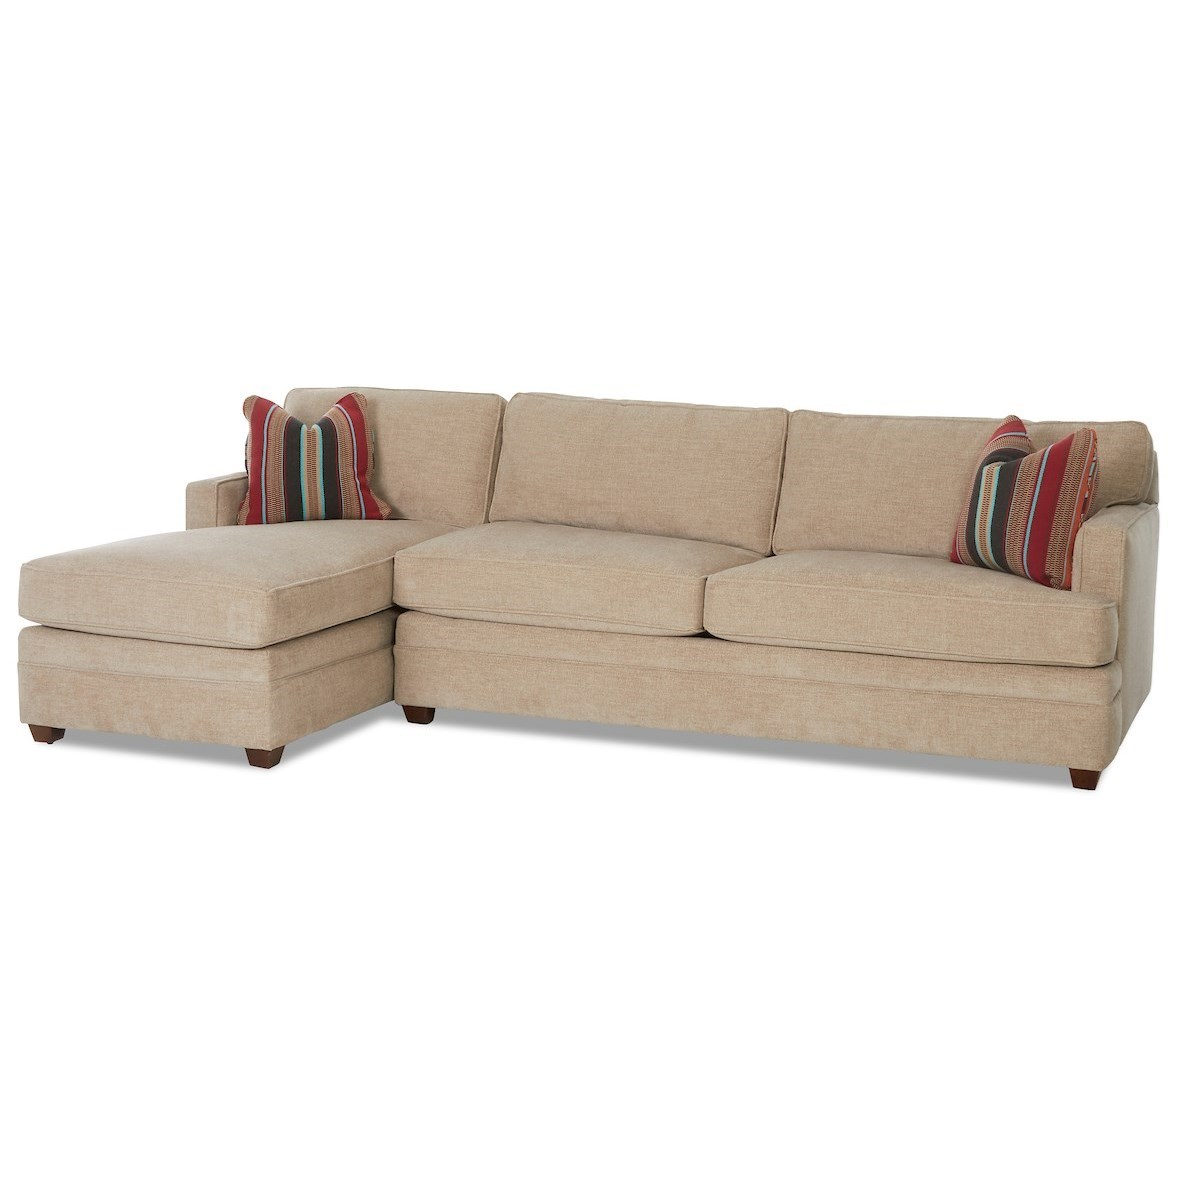 Living Your Way 2-Piece Sectional w/ RAF Dreamquest Sleeper by Klaussner at Johnny Janosik